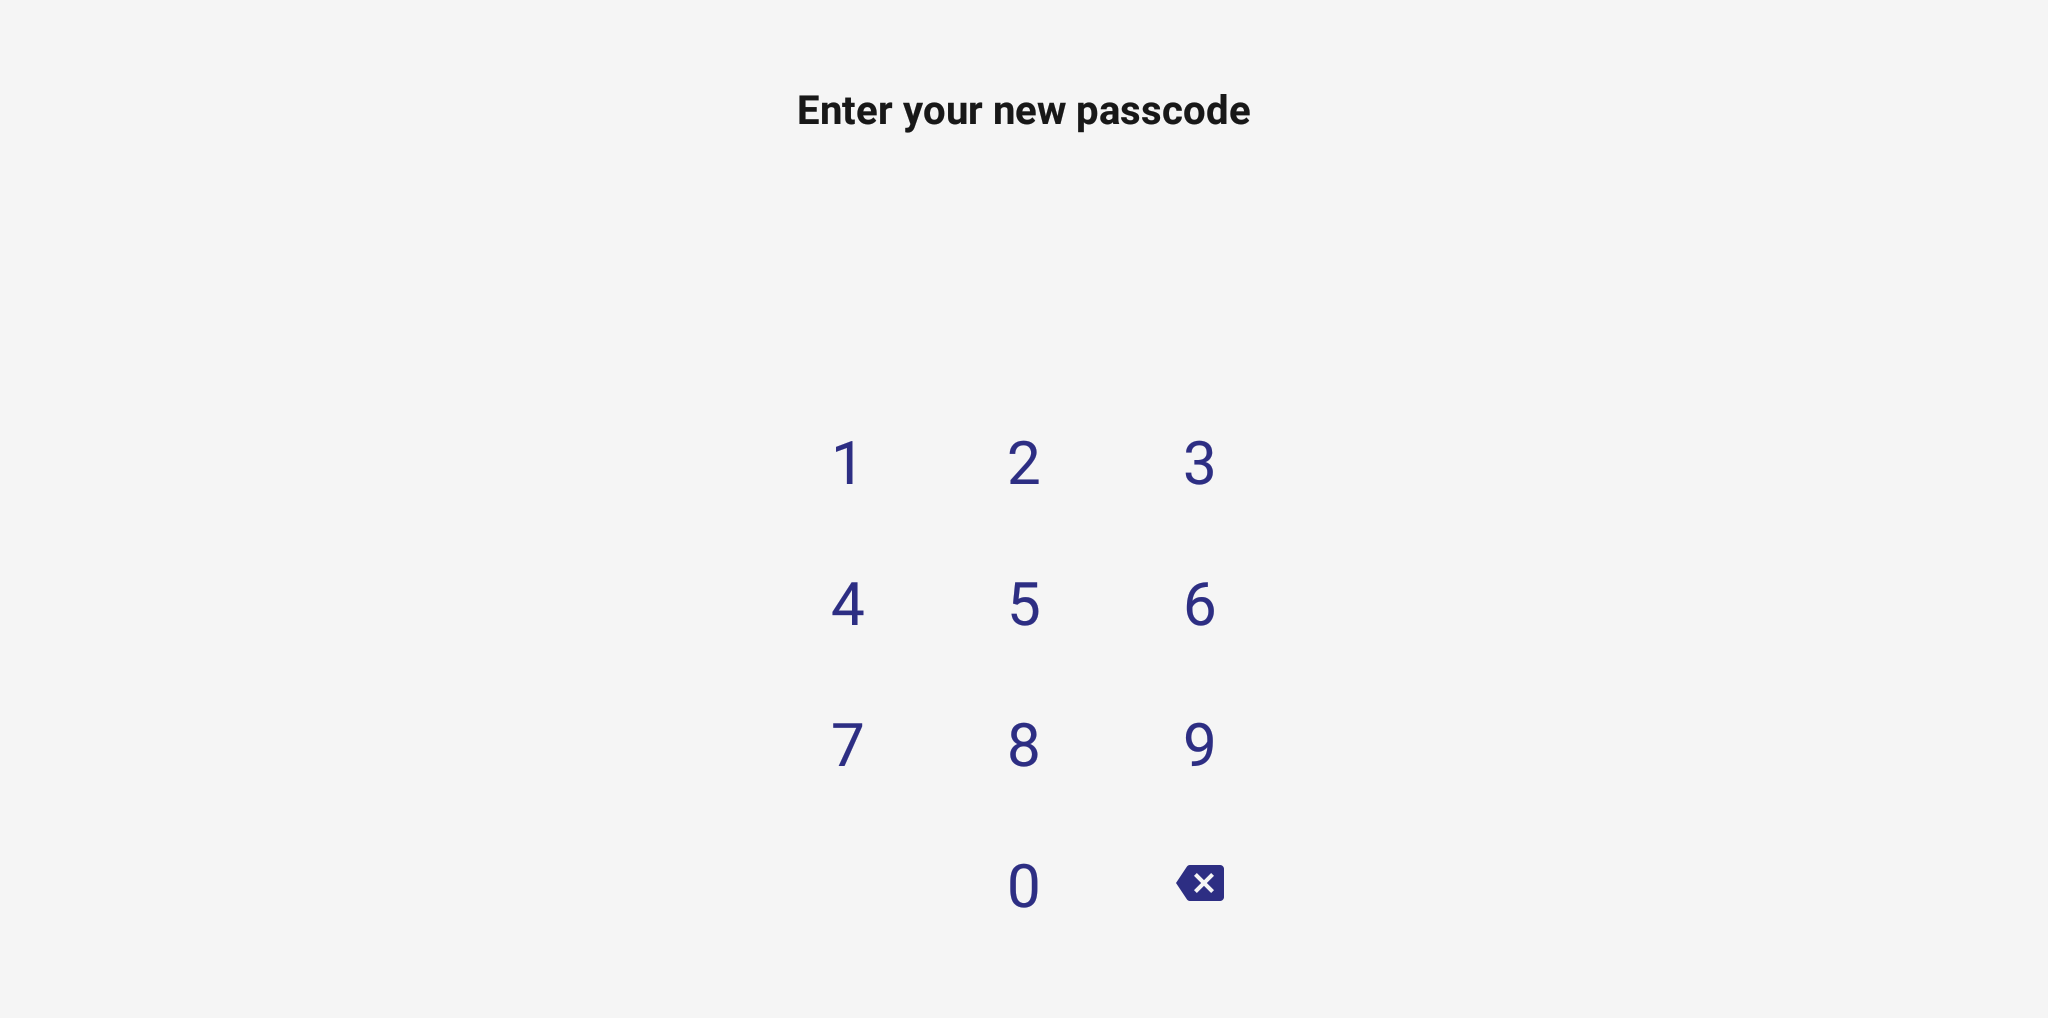 Enter_a_passcode_with_at_least_four_numbers.png